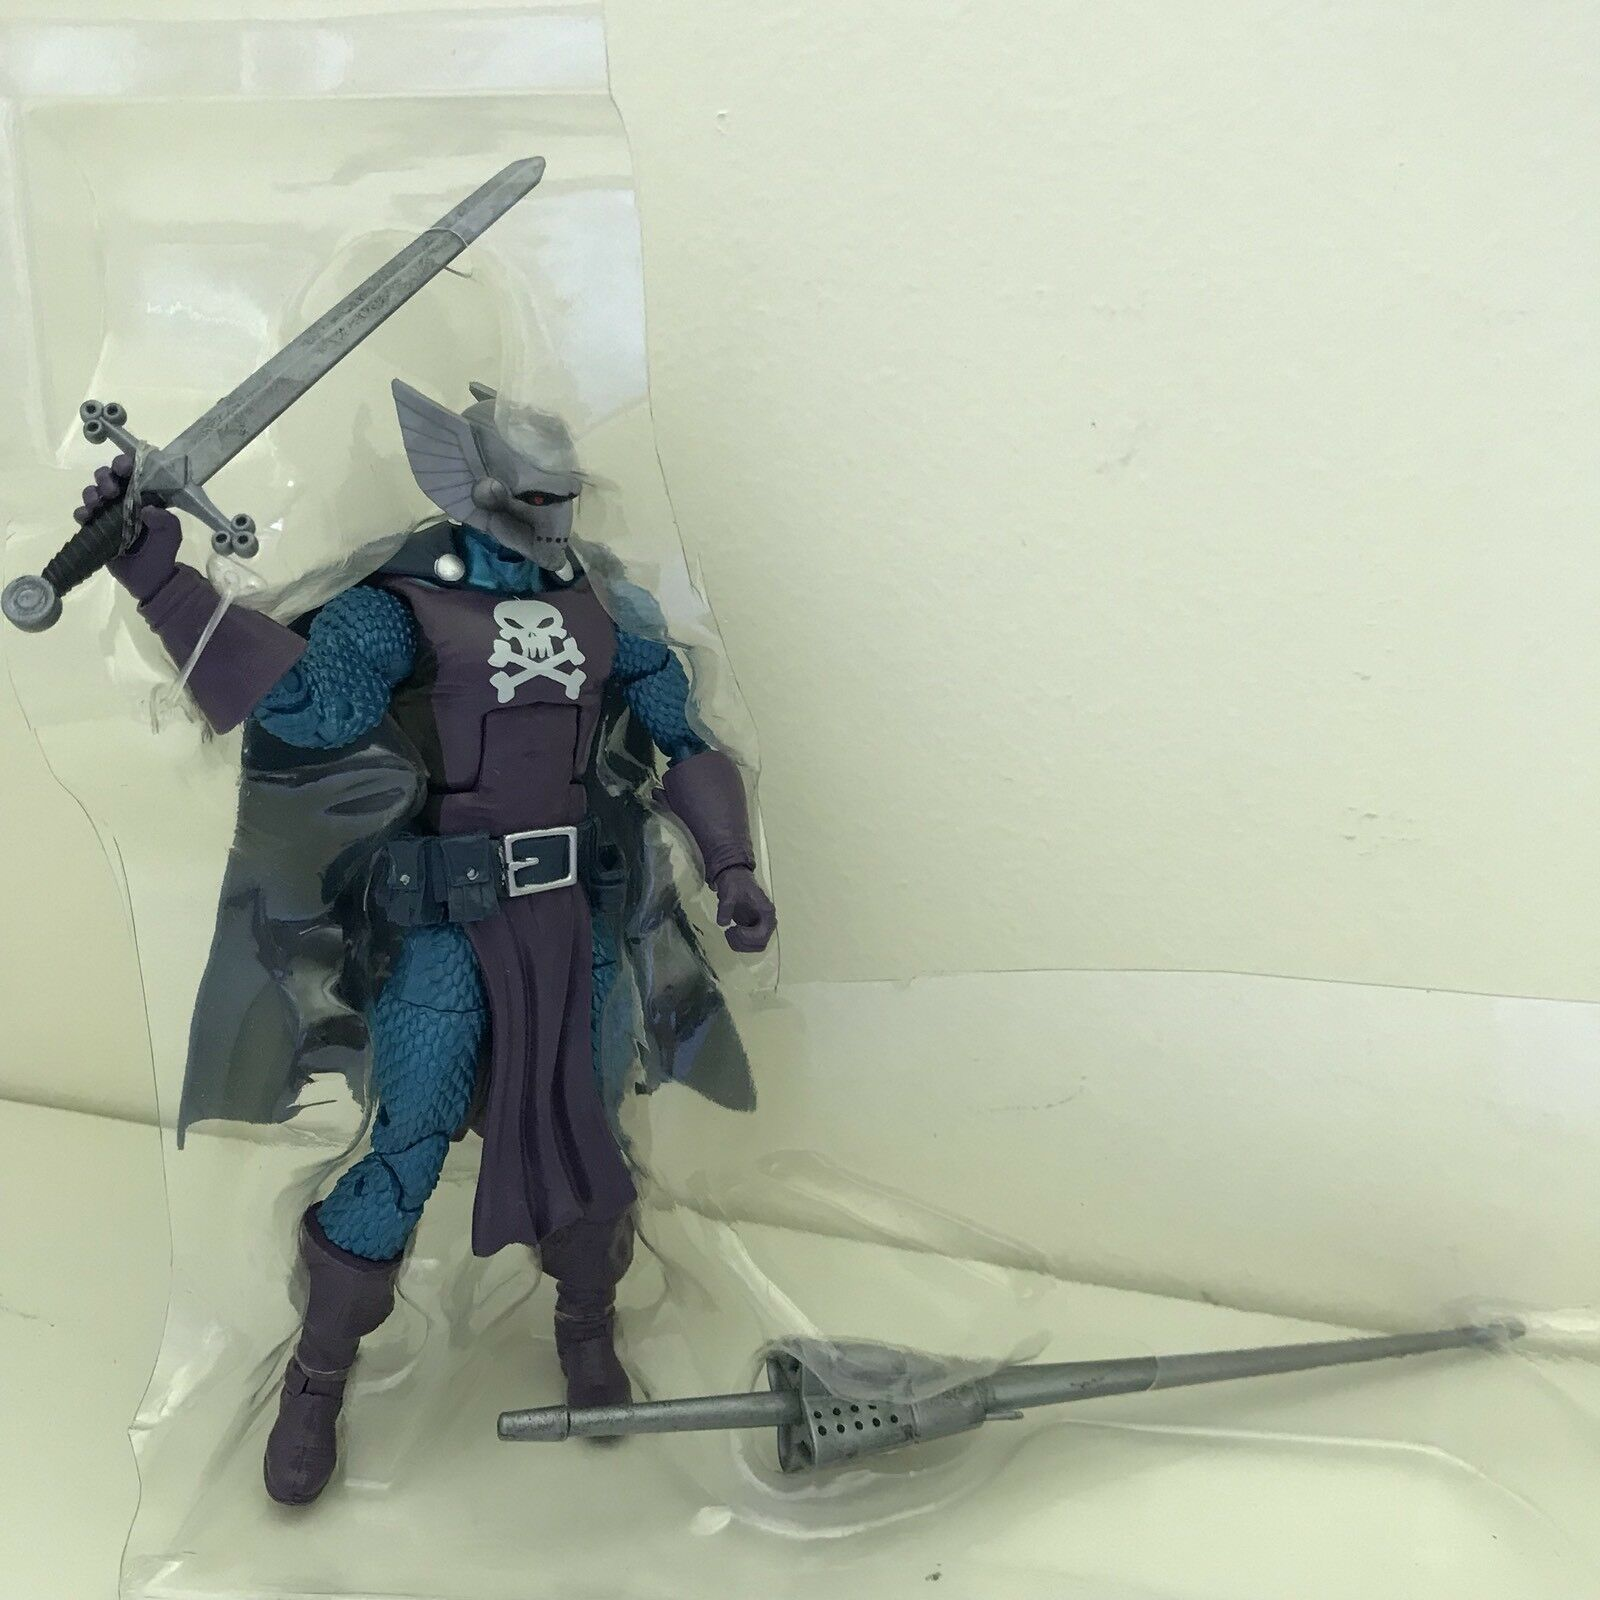 Dreadknight (Bram Velsing) Marvel Legends SDCC 2016 Hasbro Exclusive of The Raft